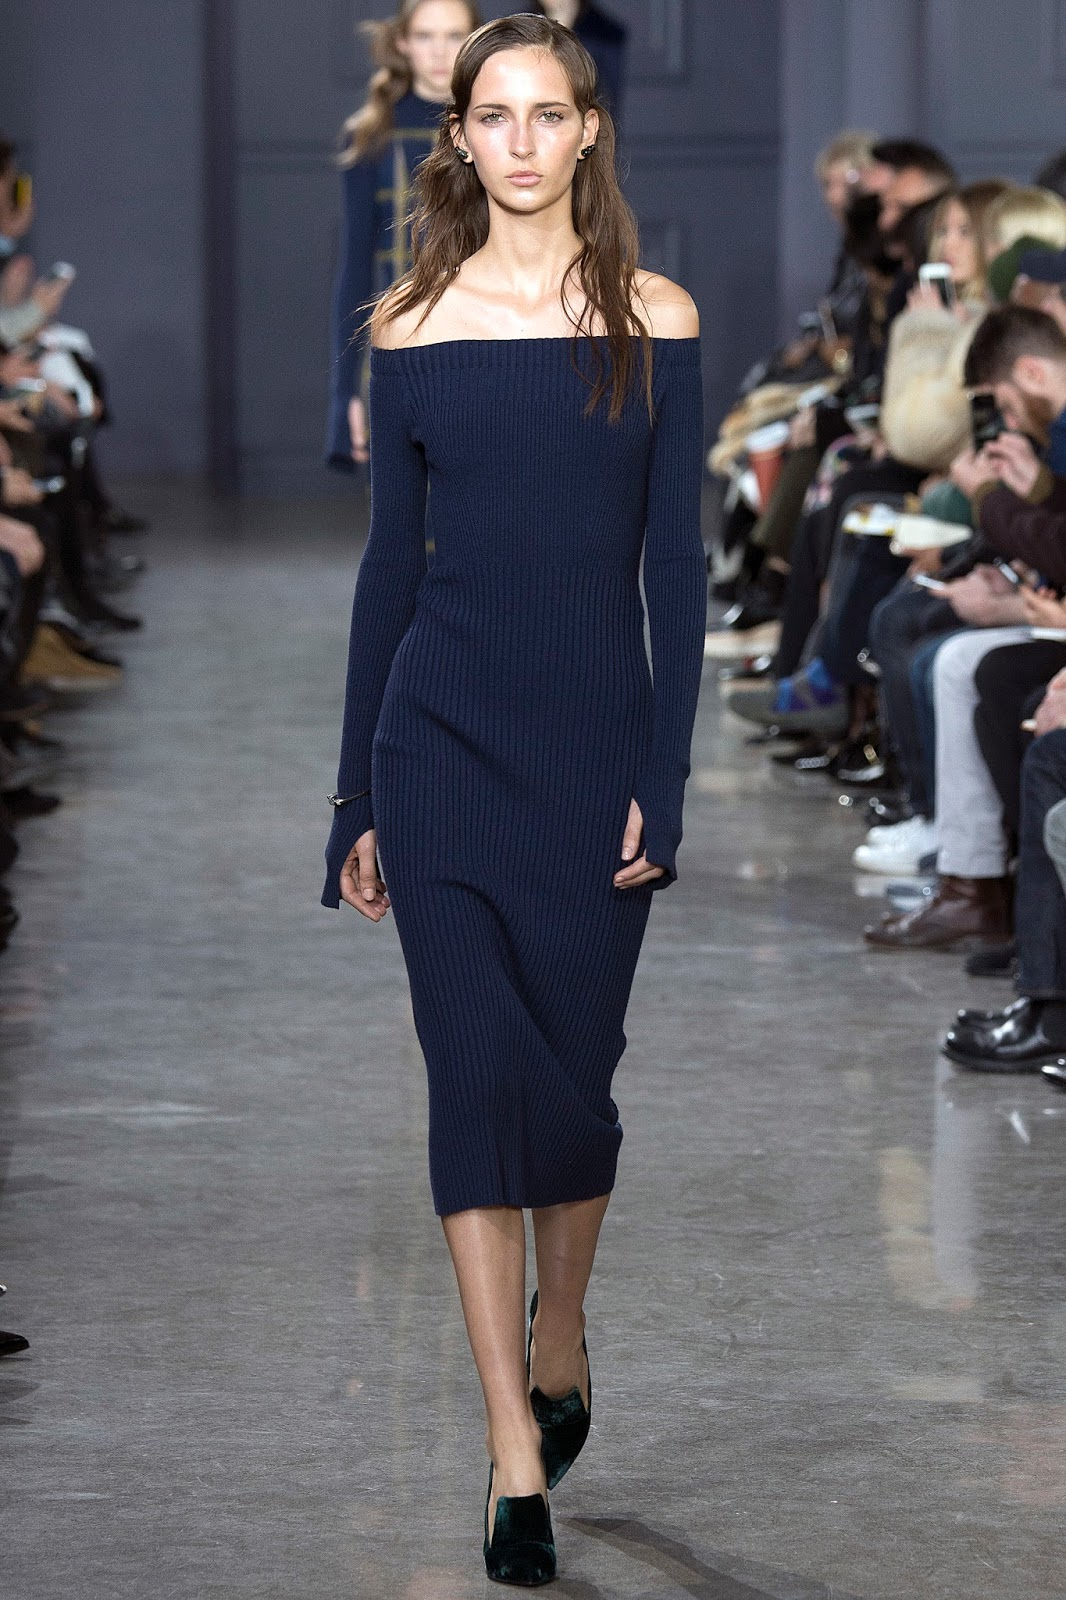 Jason Wu Fall/Winter 2016, New York Fashion Week, NYFW best collections via www.fashionedbylove.co.uk